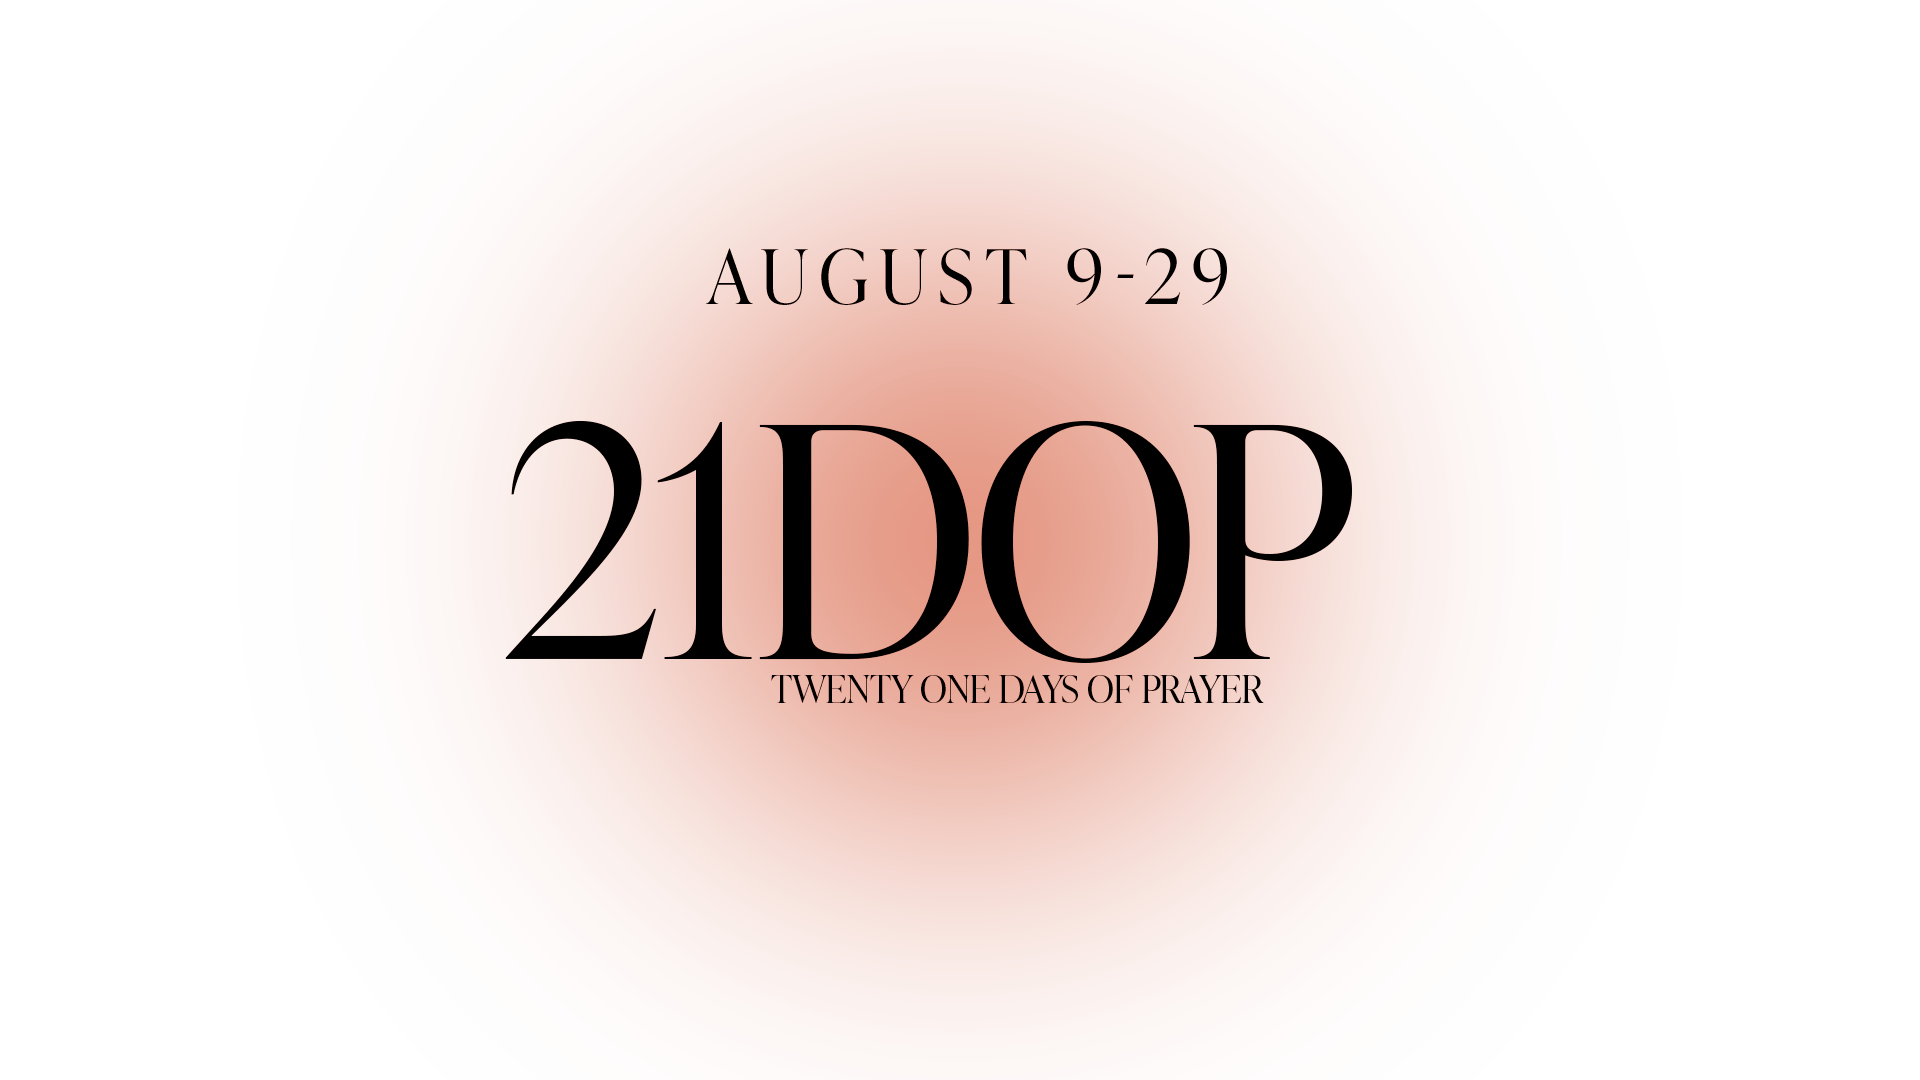 21DOP-Aug2021-LogoWithCorrectDate